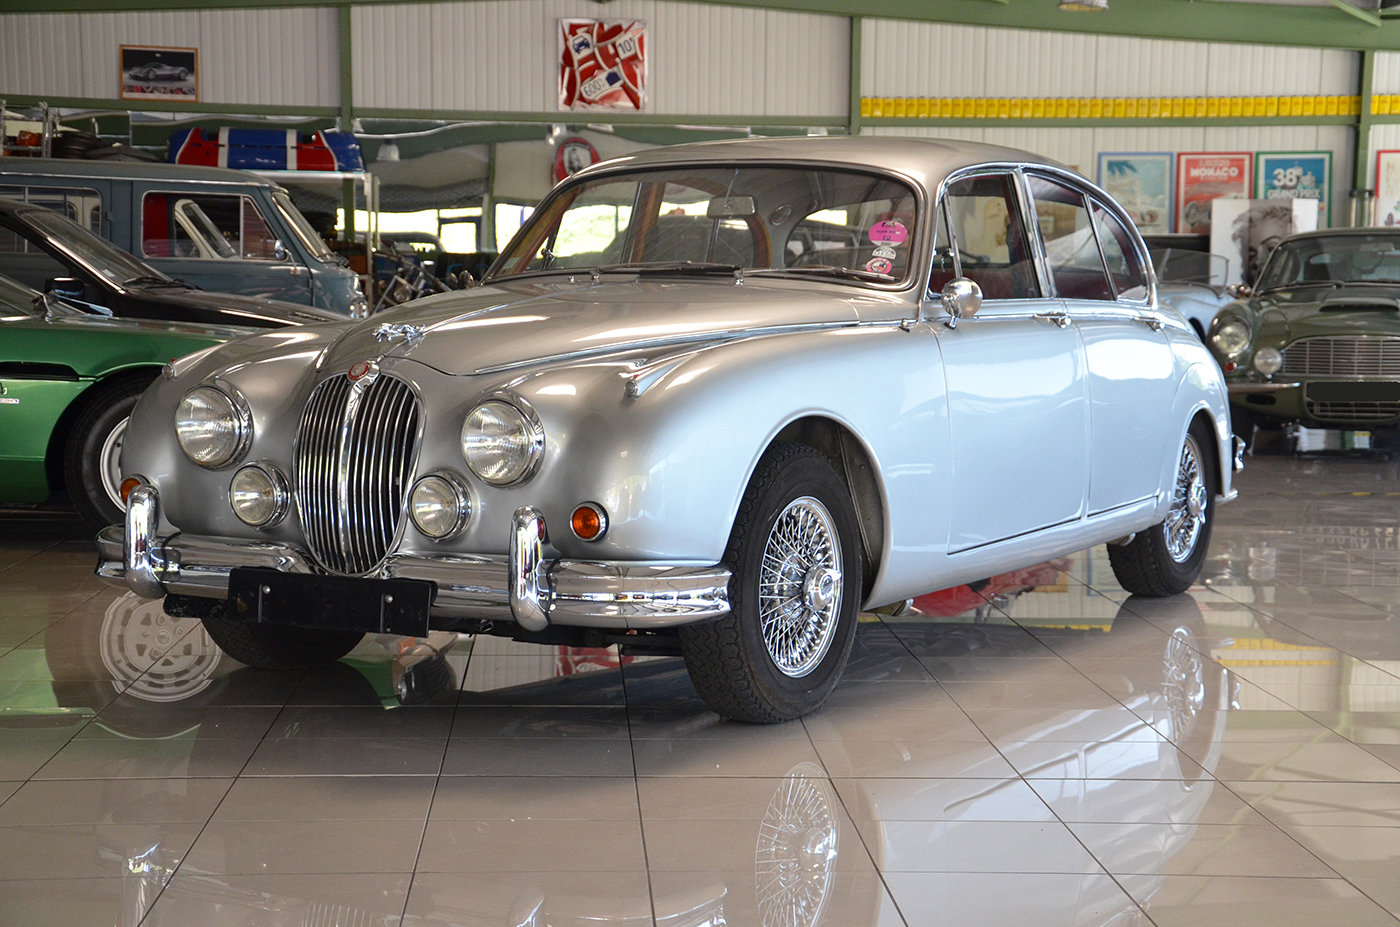 1960 Jaguar MK II 3.8 L - LHD - Top condition For Sale (picture 1 of 6)